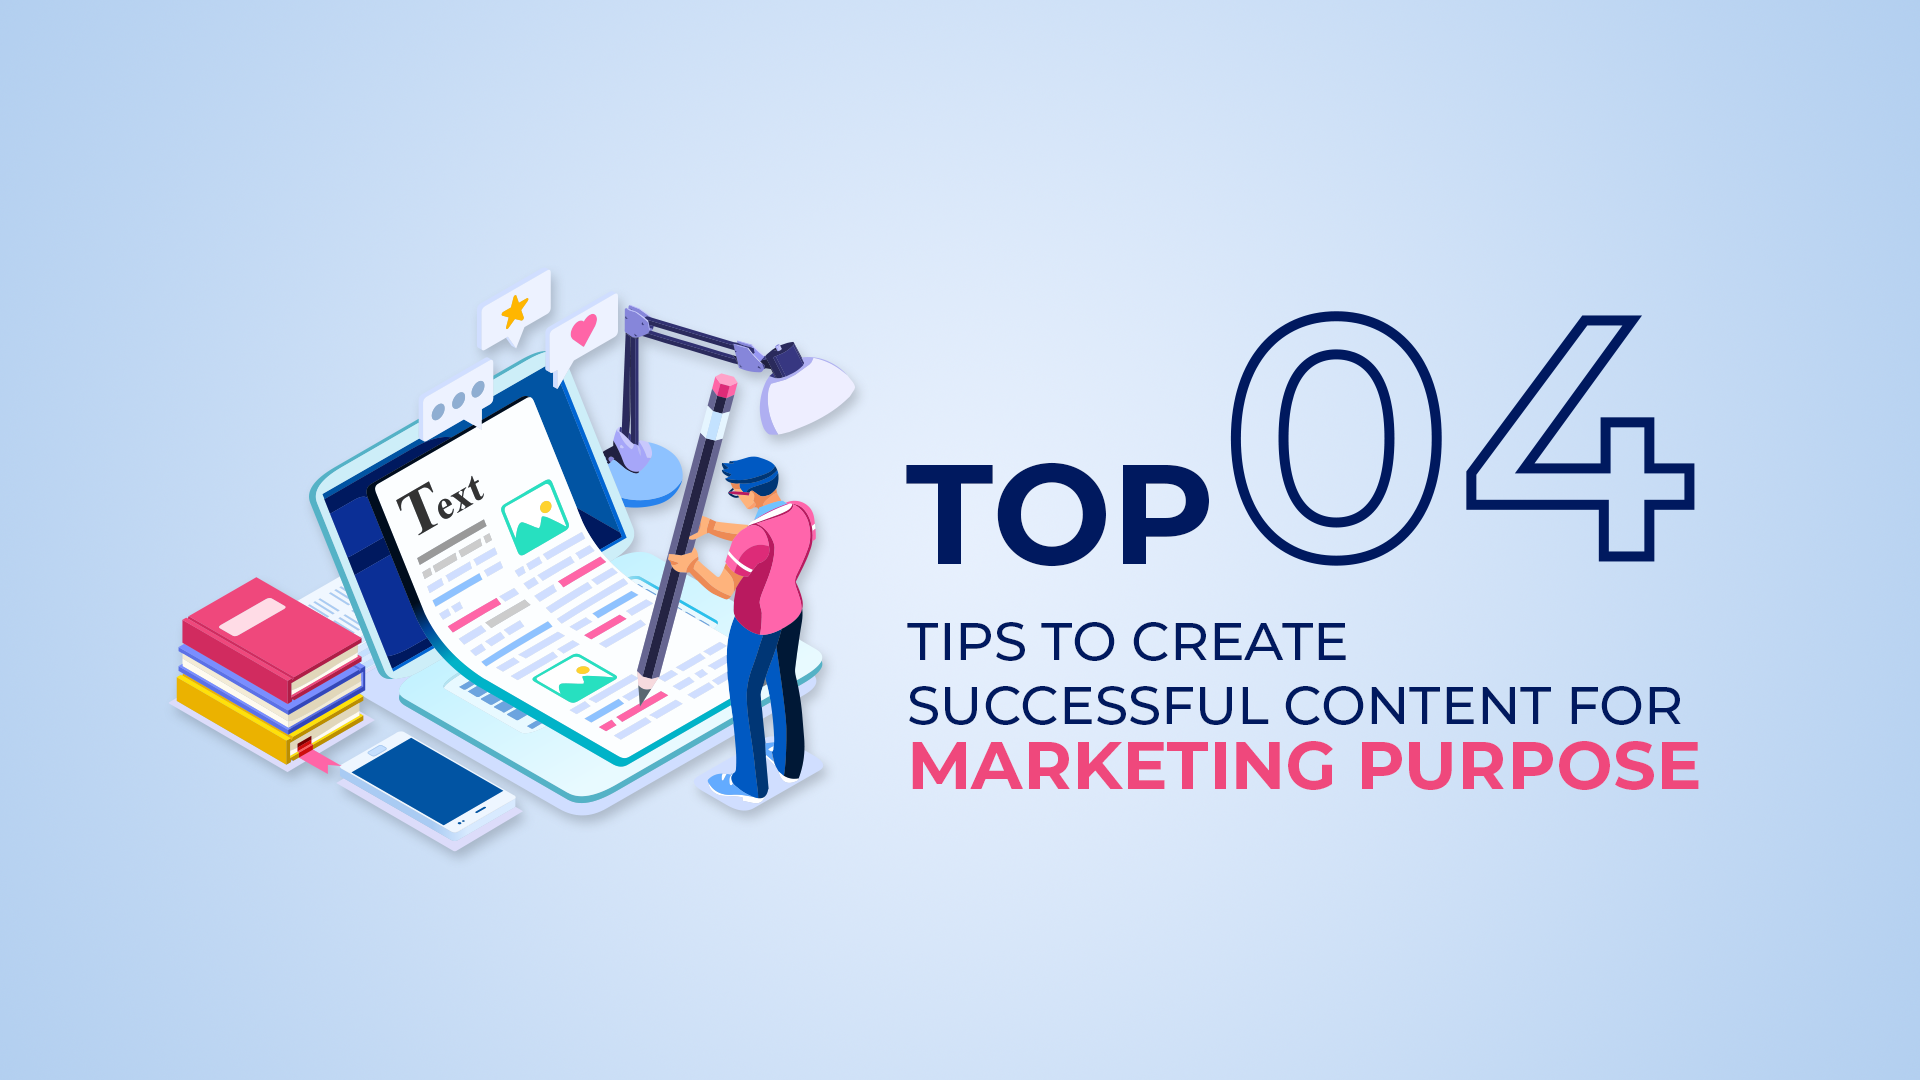 Top 4 tips to create successful content for marketing purpose